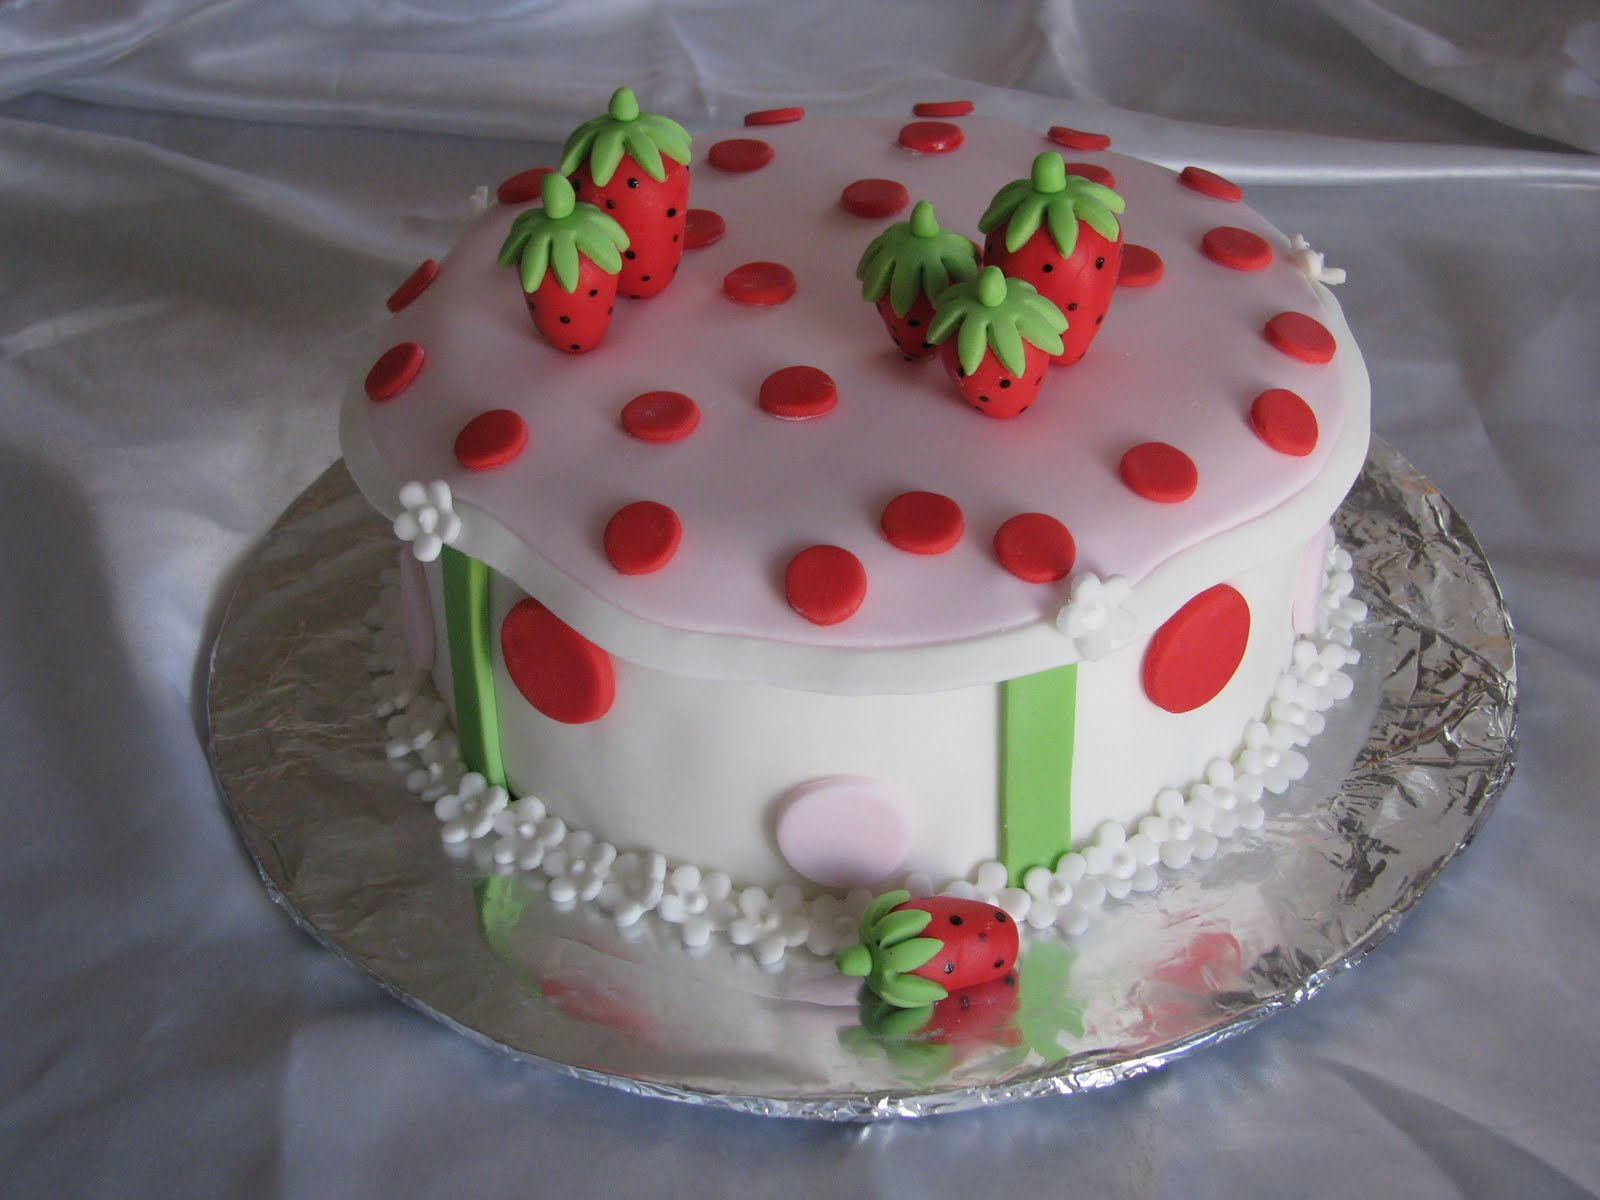 ... strawberry shortcake cake strawberry shortcake herself strawberry was